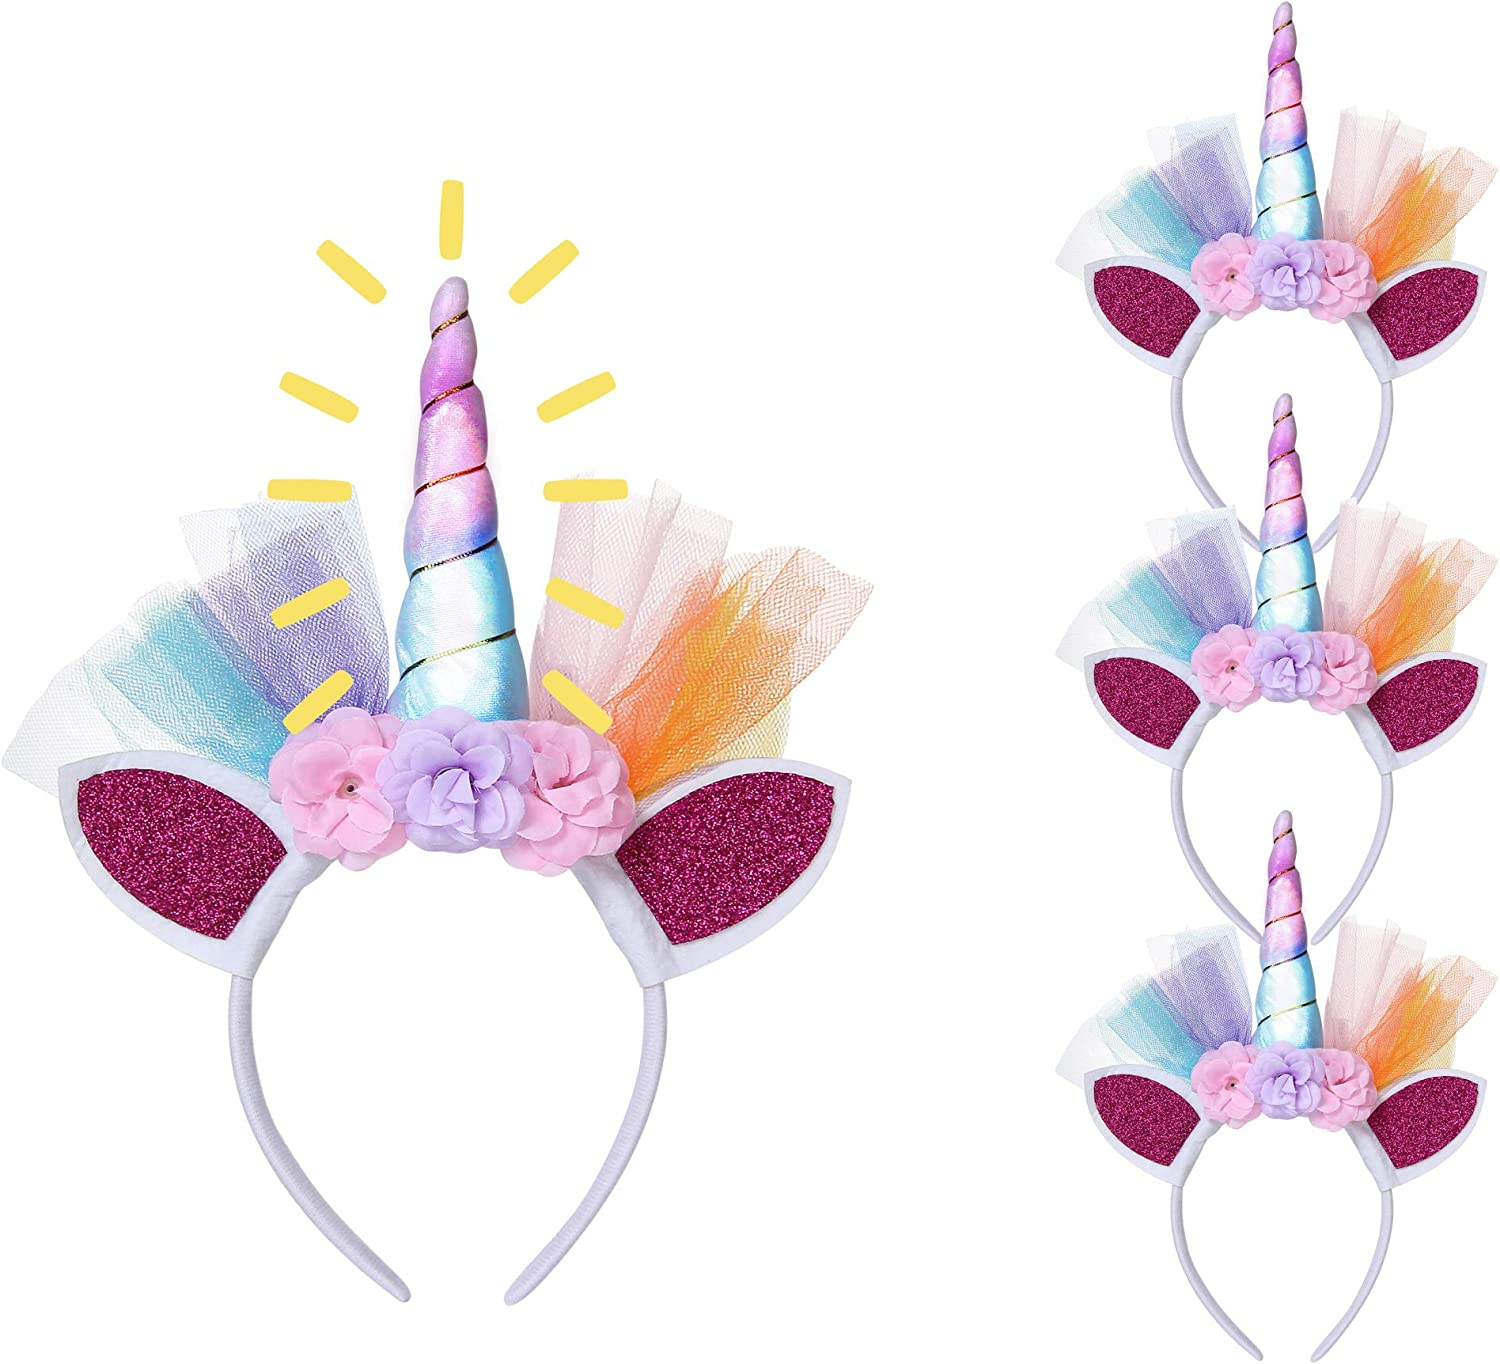 Amazon Com 315 Products Led Unicorn Headbands Party Favor Supplies For Both Kids Adults Pack Of 4 Clothing